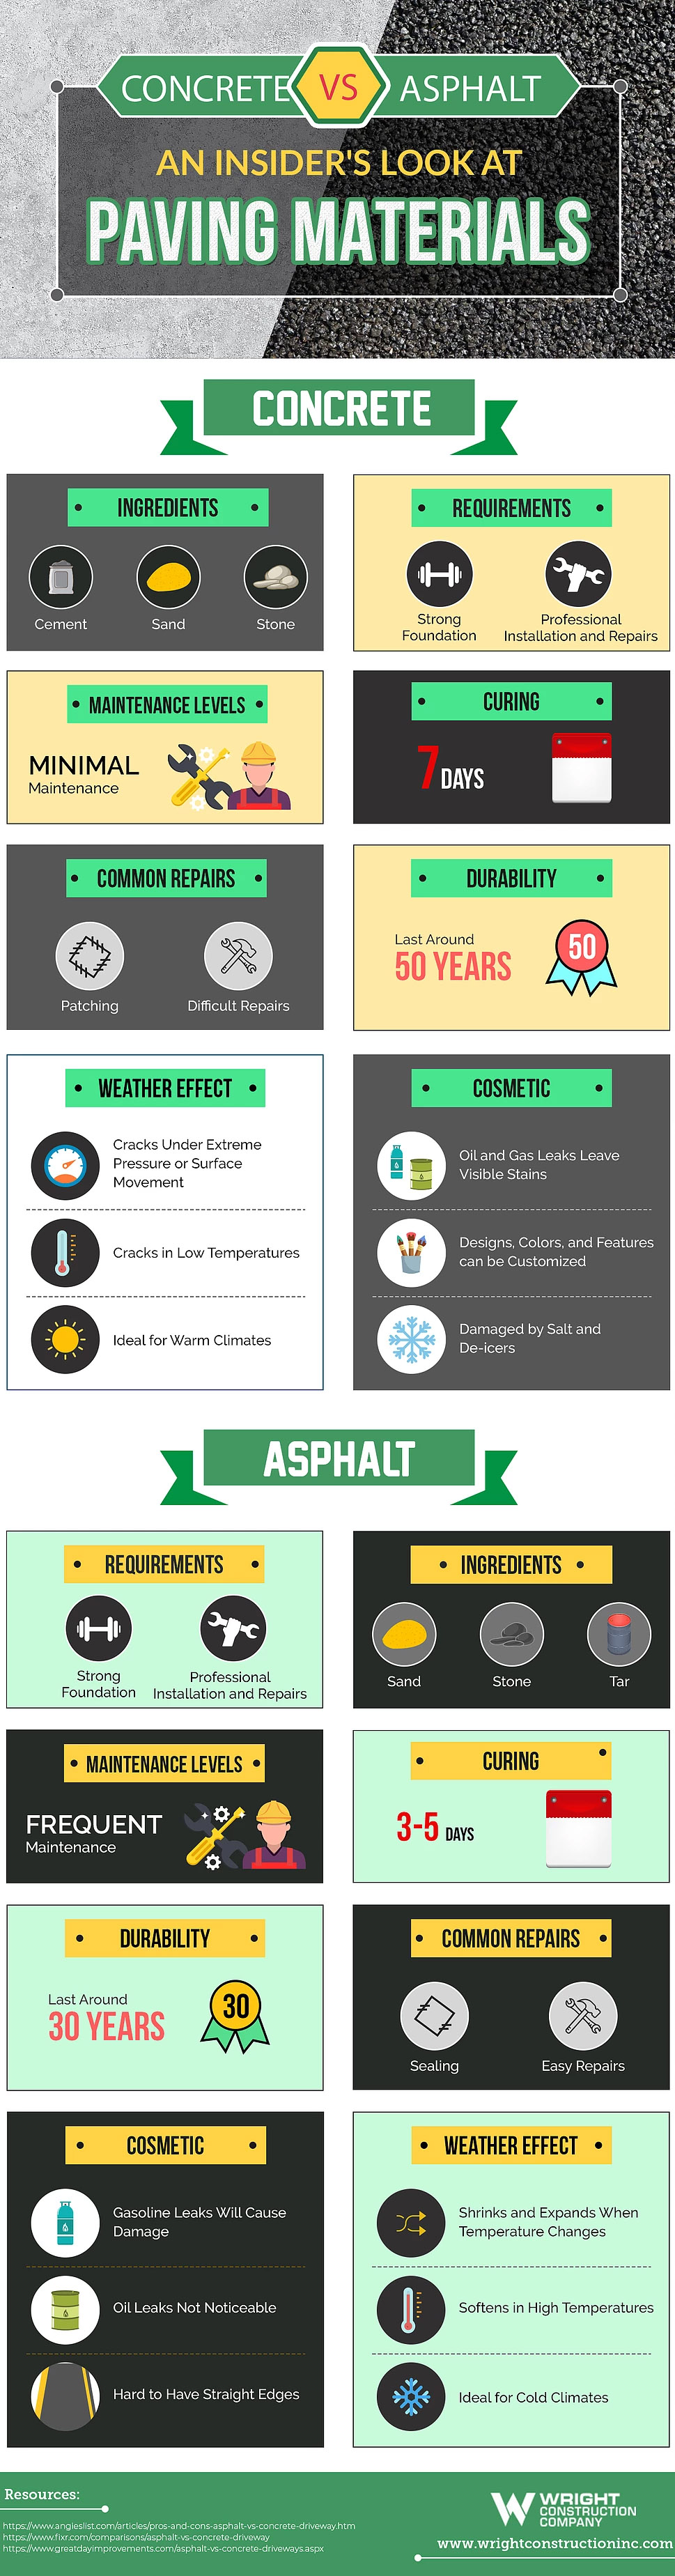 Concrete v. Asphalt: An Insider's Look at Paving Materials